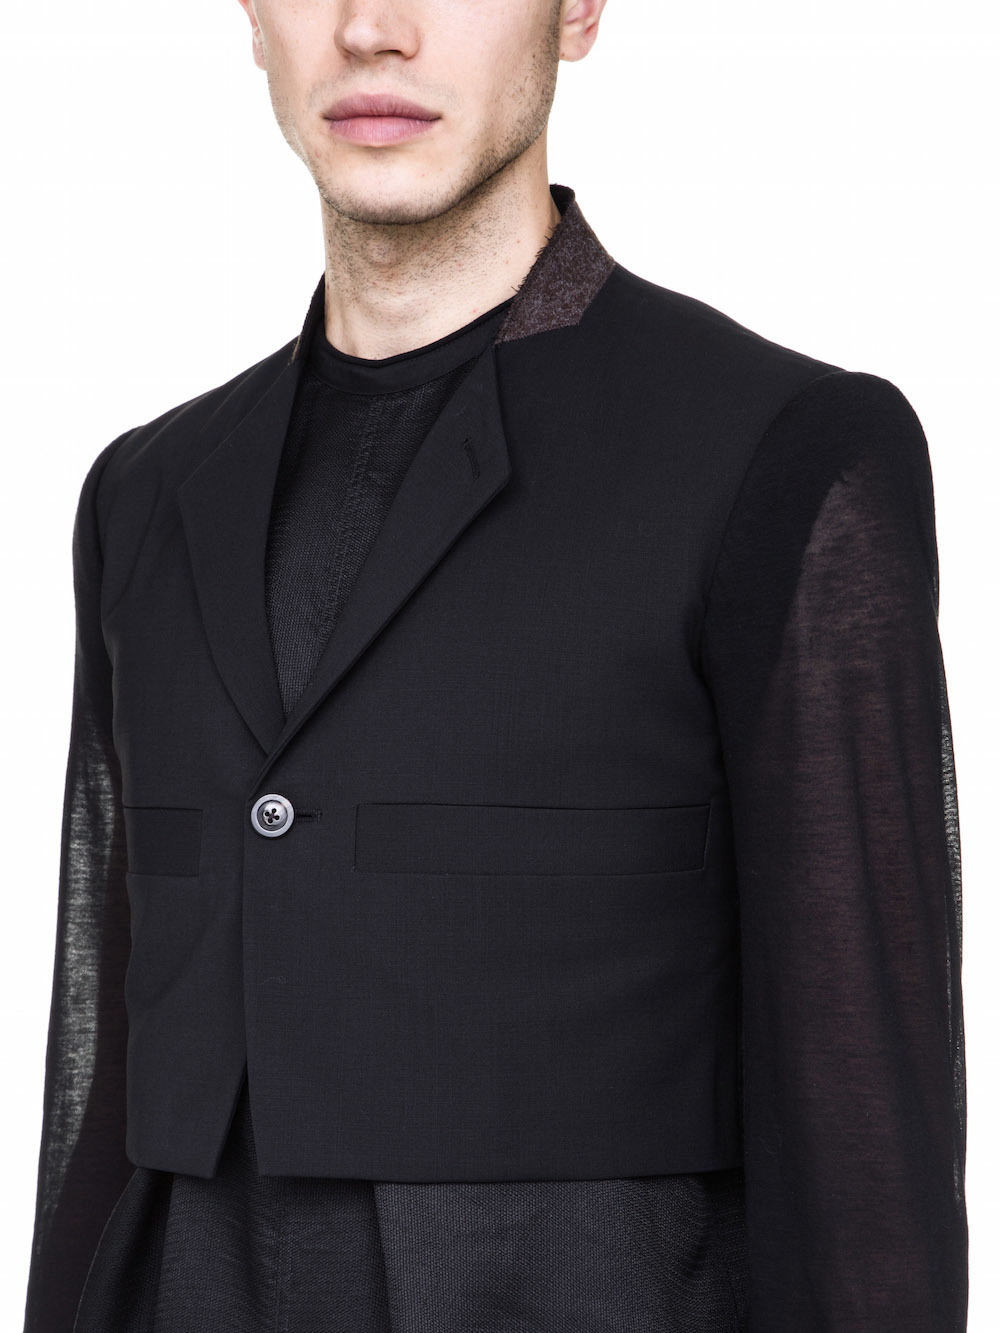 RICK OWENS OFF-THE-RUNWAY MICRO ONE BUTTON JACKET